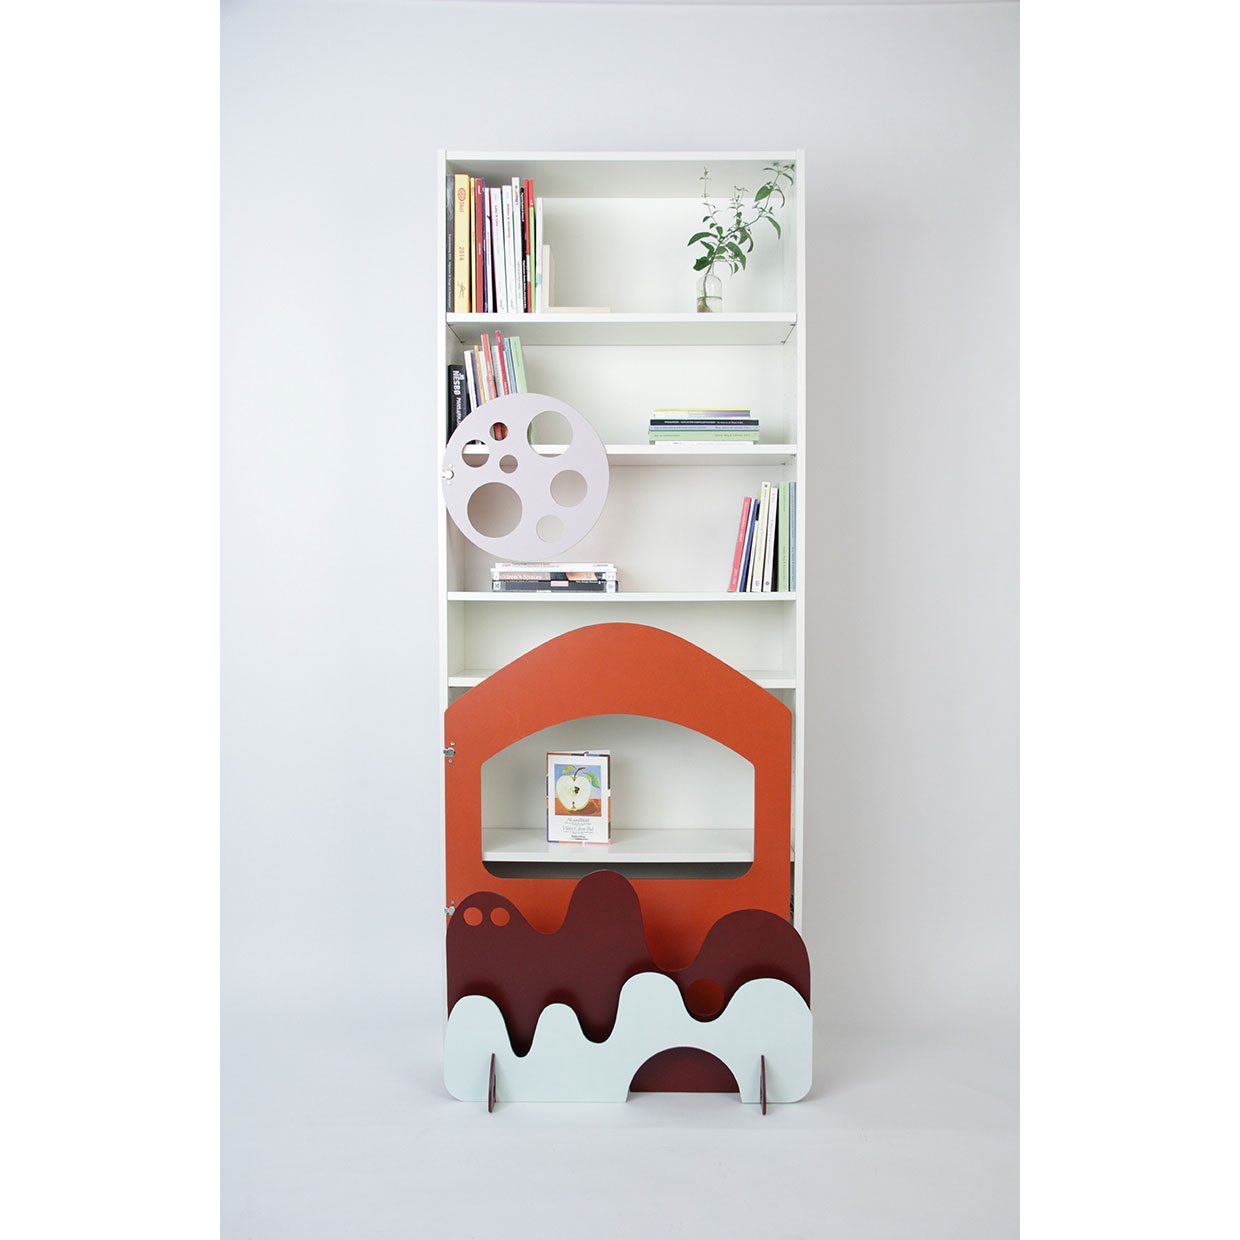 play-furniture-modern-kids-furniture-KUL-Marta-Szpunar_1